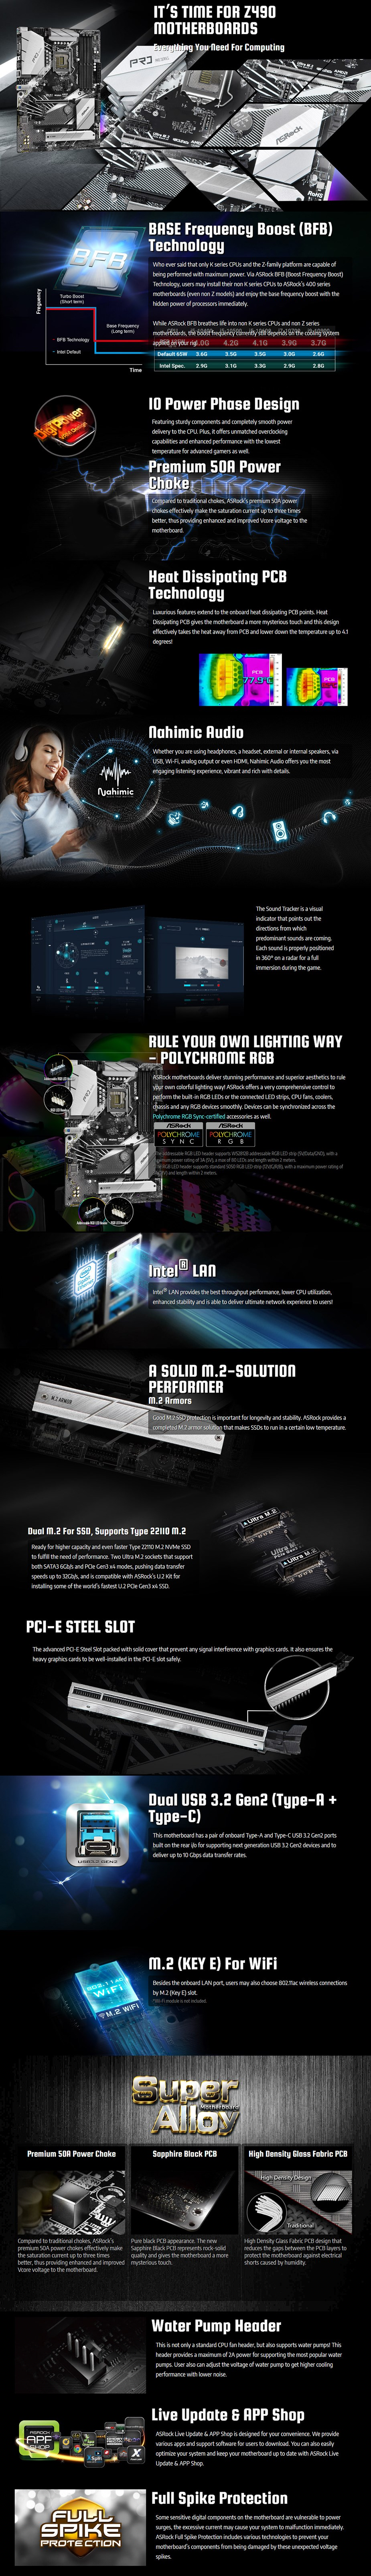 ASRock Z490 Pro4 LGA 1200 ATX Motherboard - Overview 1